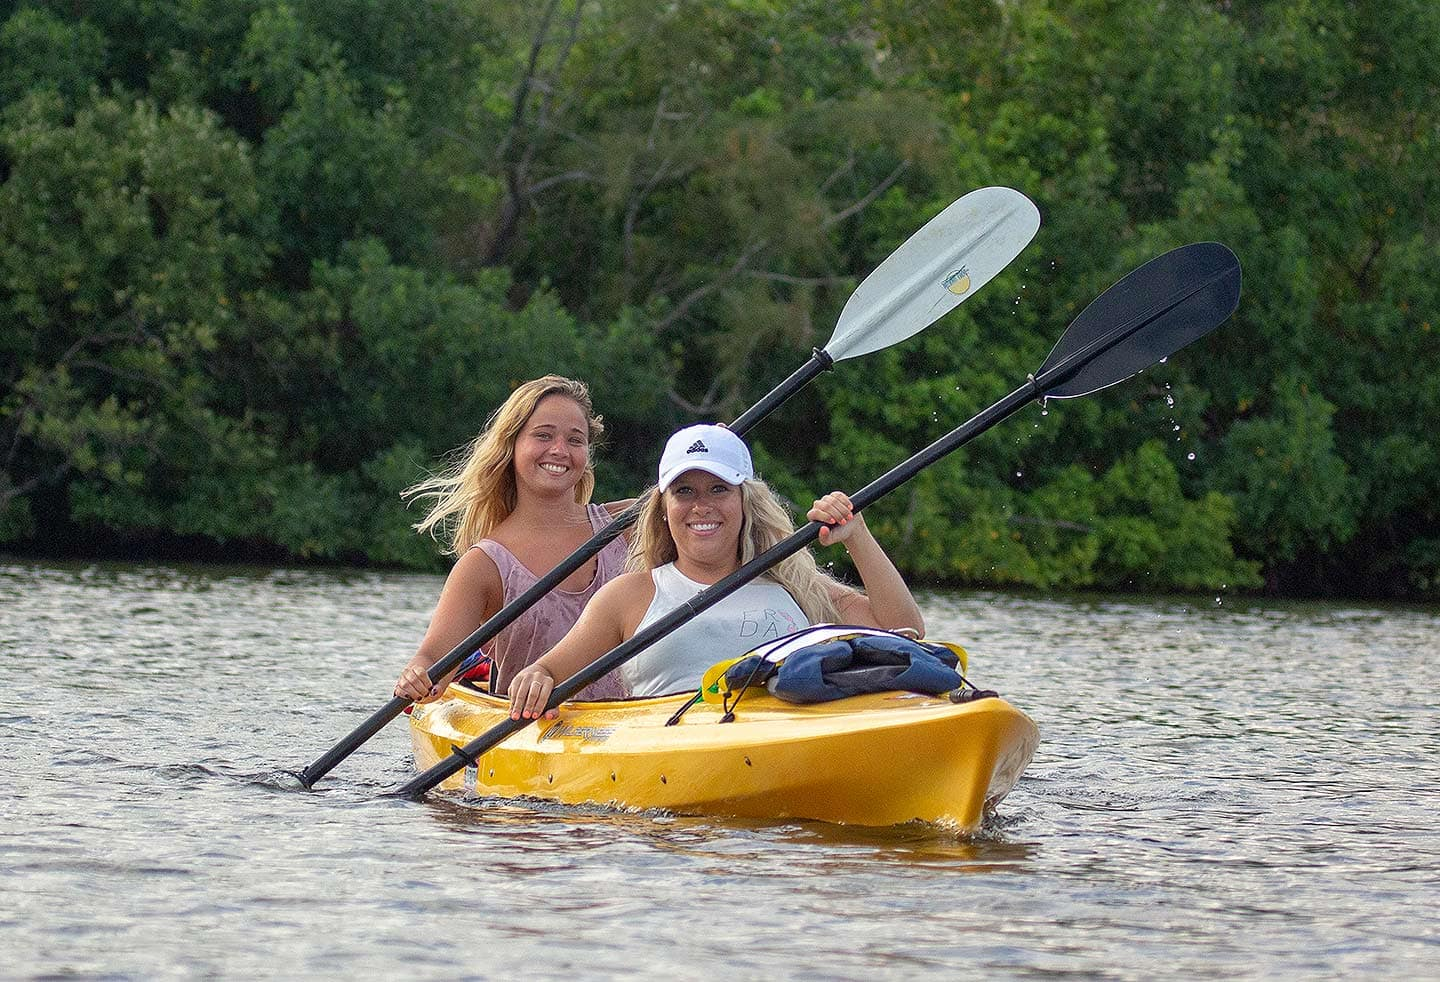 Kayak Rentals, Siesta Key Kayaks, Siesta Key Kayak, Siesta Key Kayaking, Siesta Key Kayak Rentals